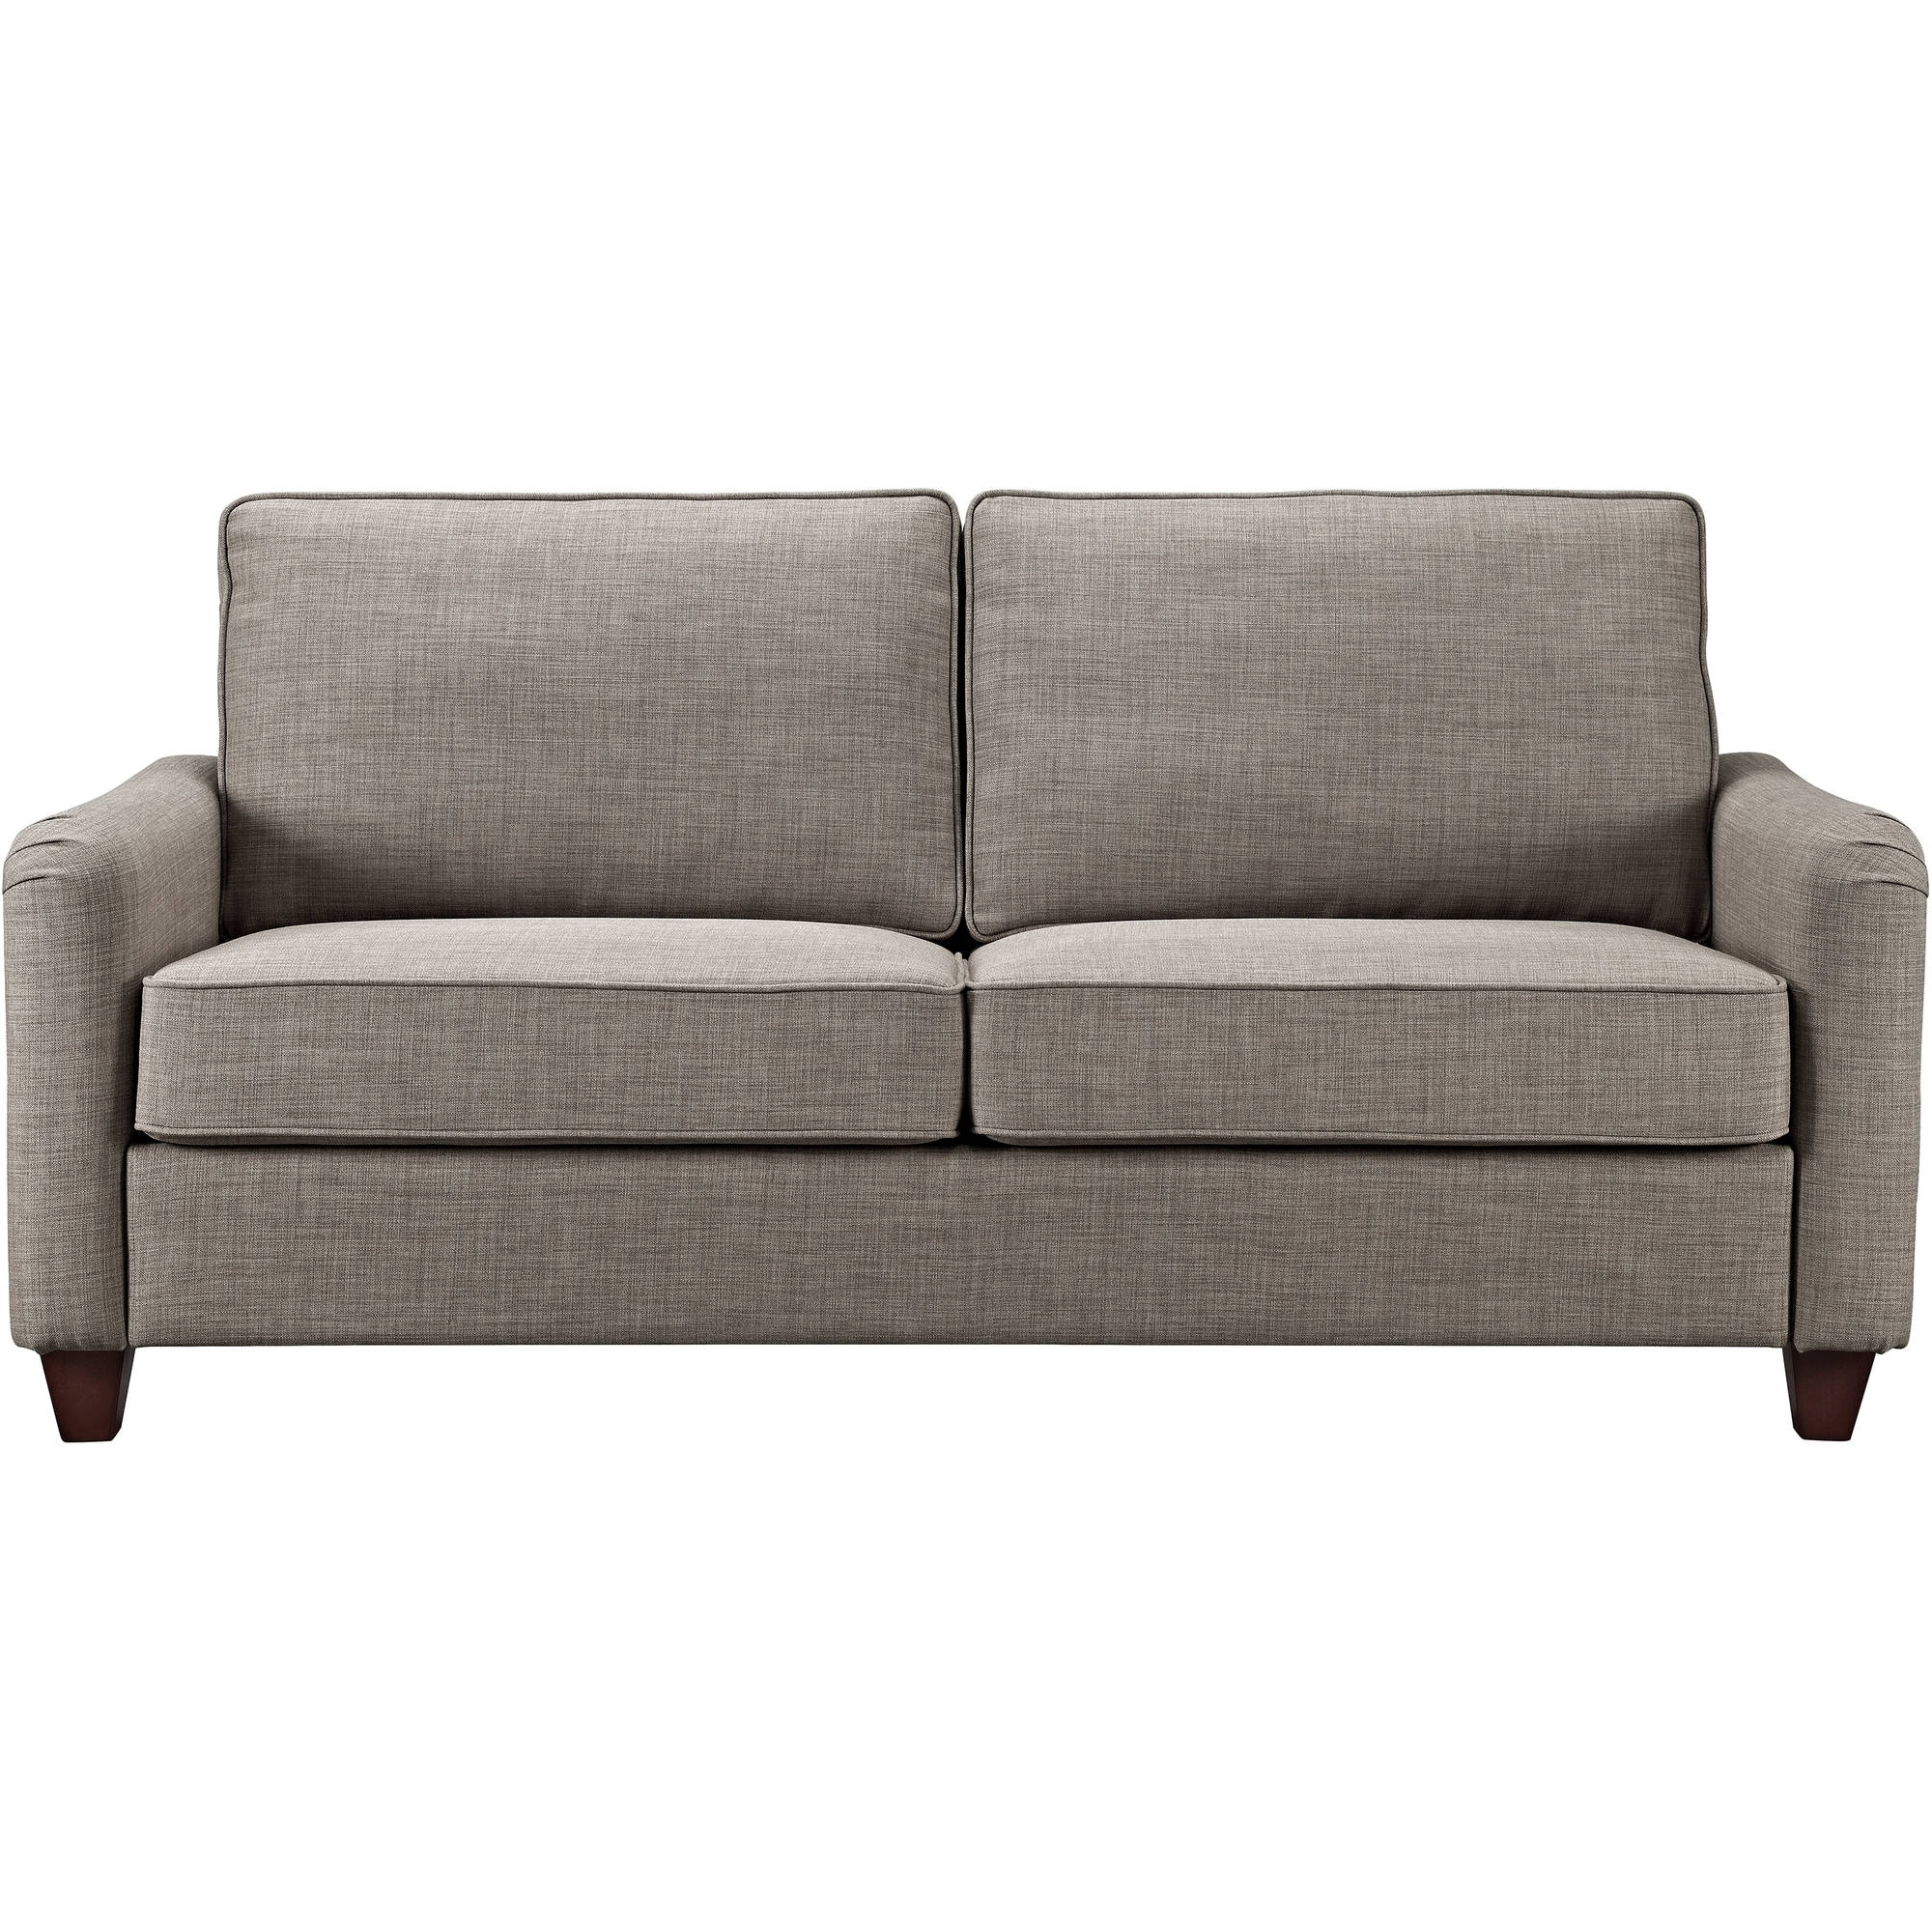 Sofas & Couches – Walmart Throughout Most Recent Roanoke Va Sectional Sofas (Gallery 20 of 20)